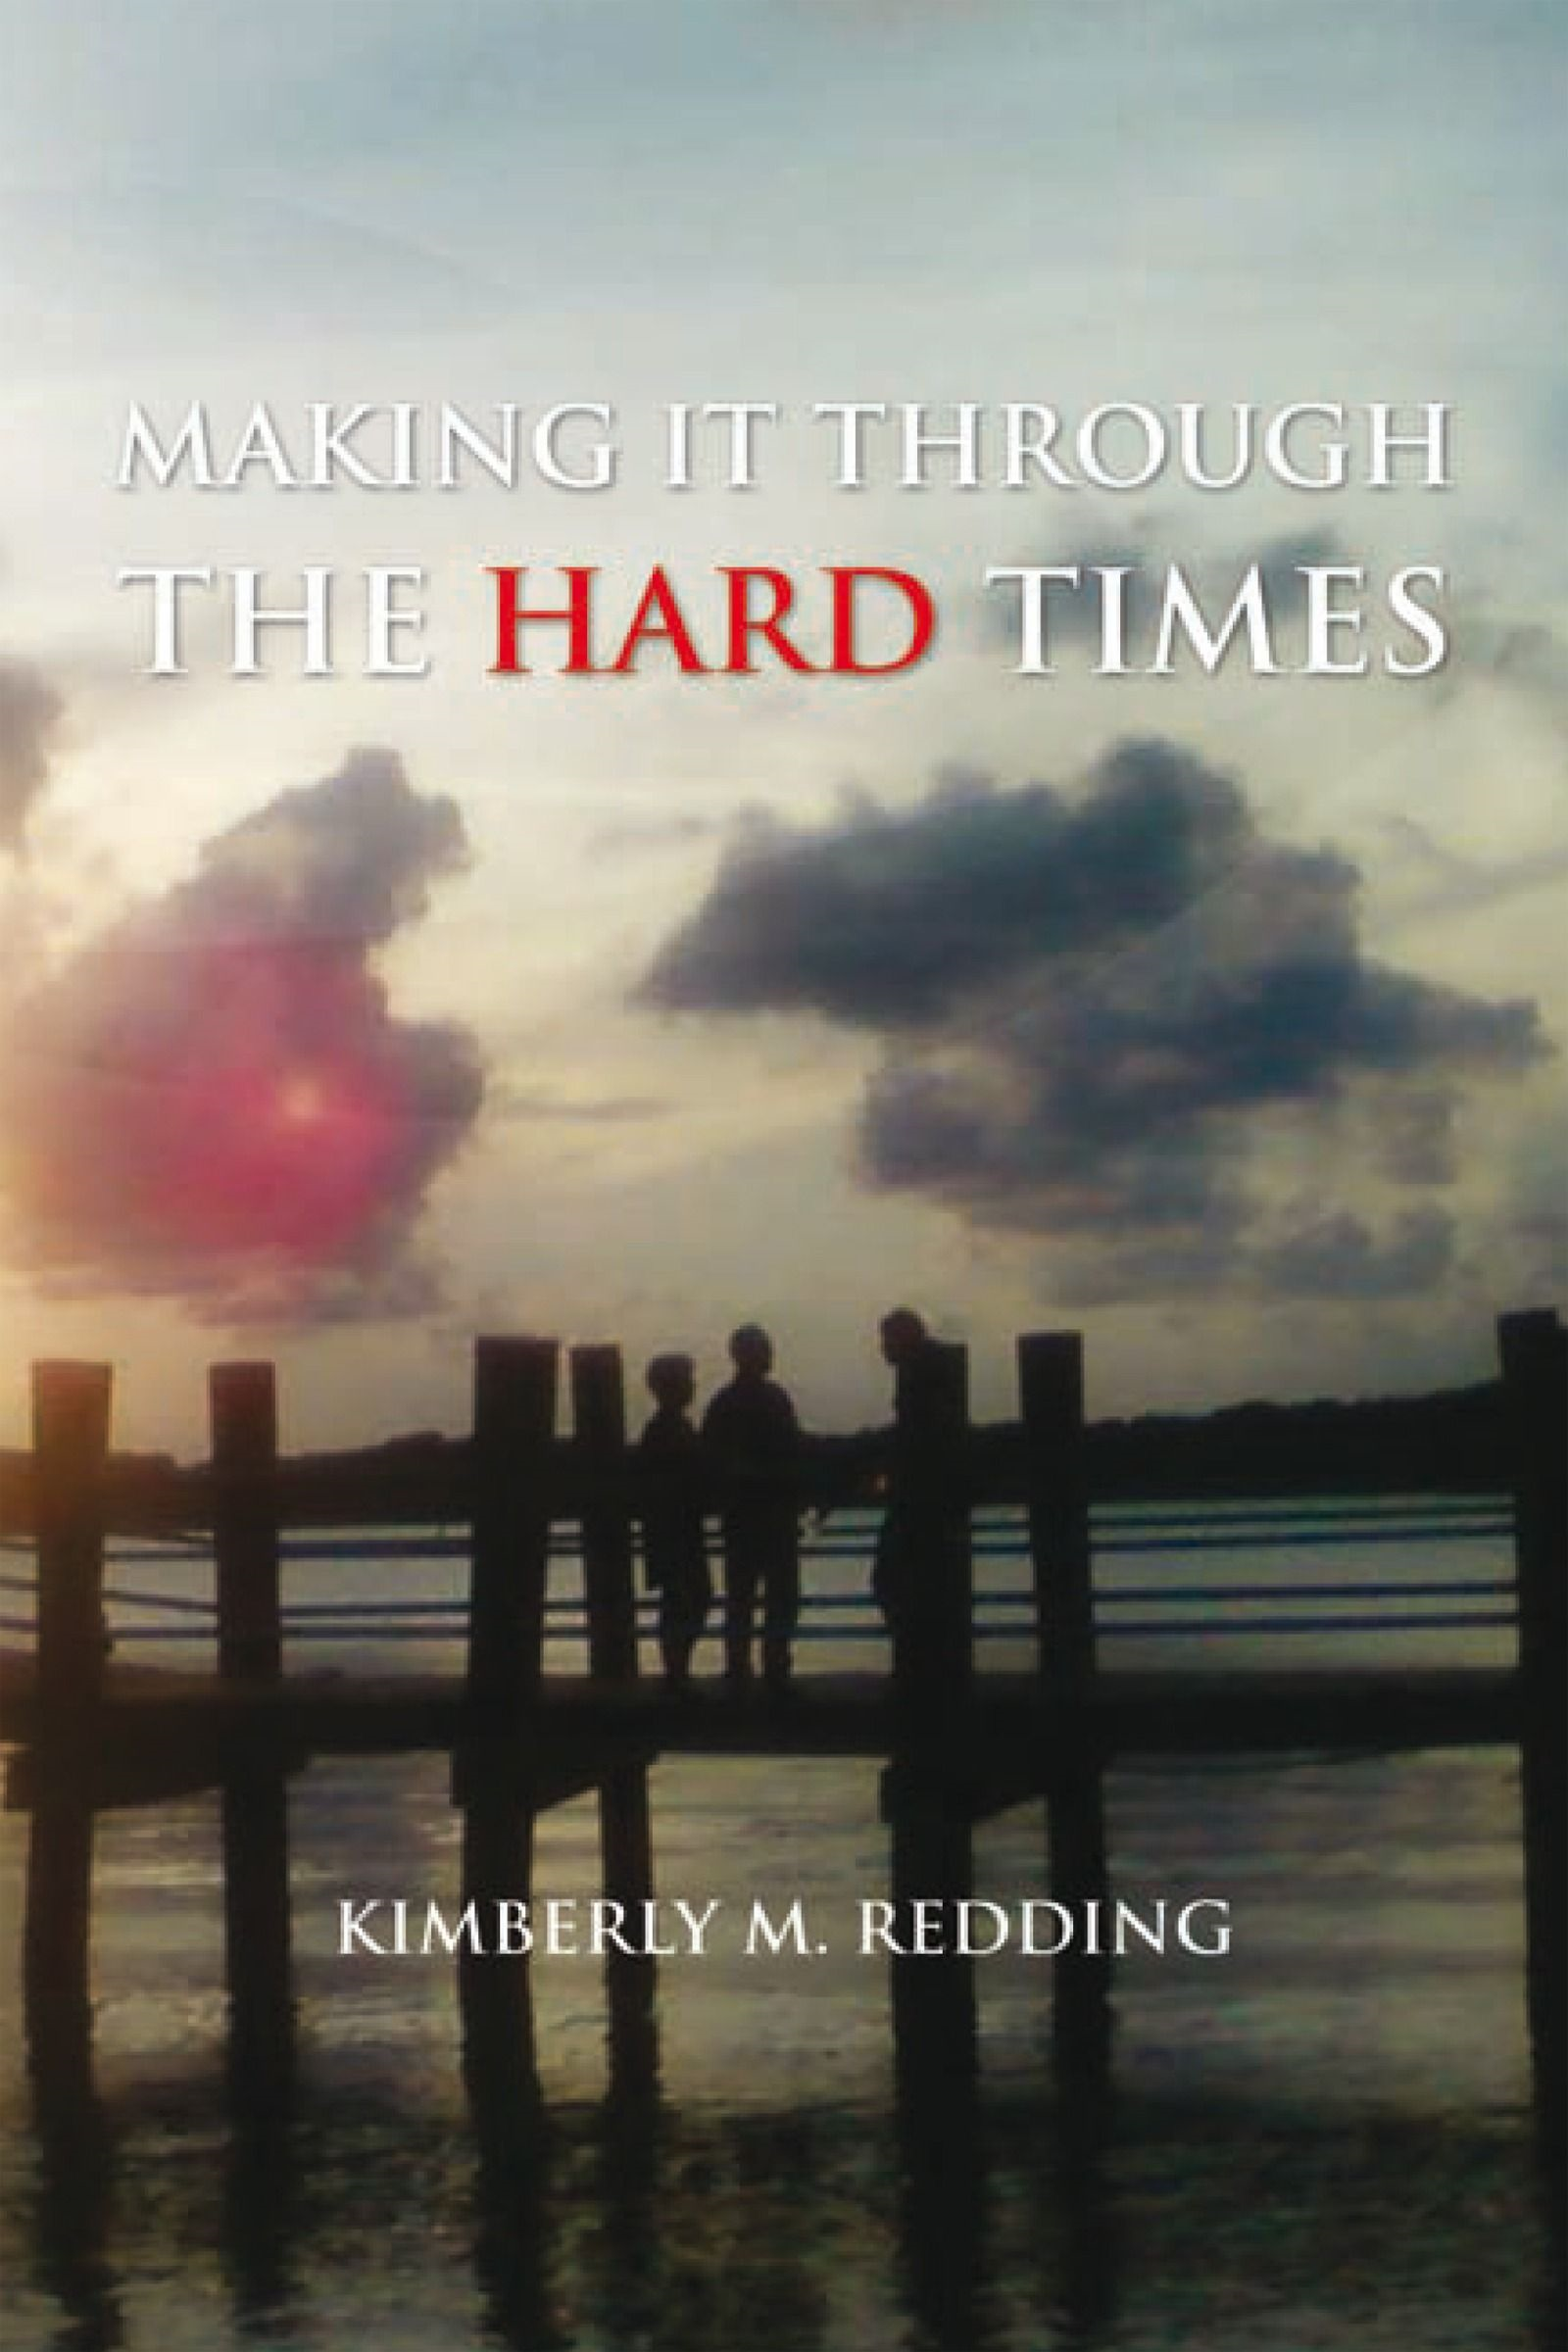 Making It Through The Hard Times By: Kimberly M. Redding